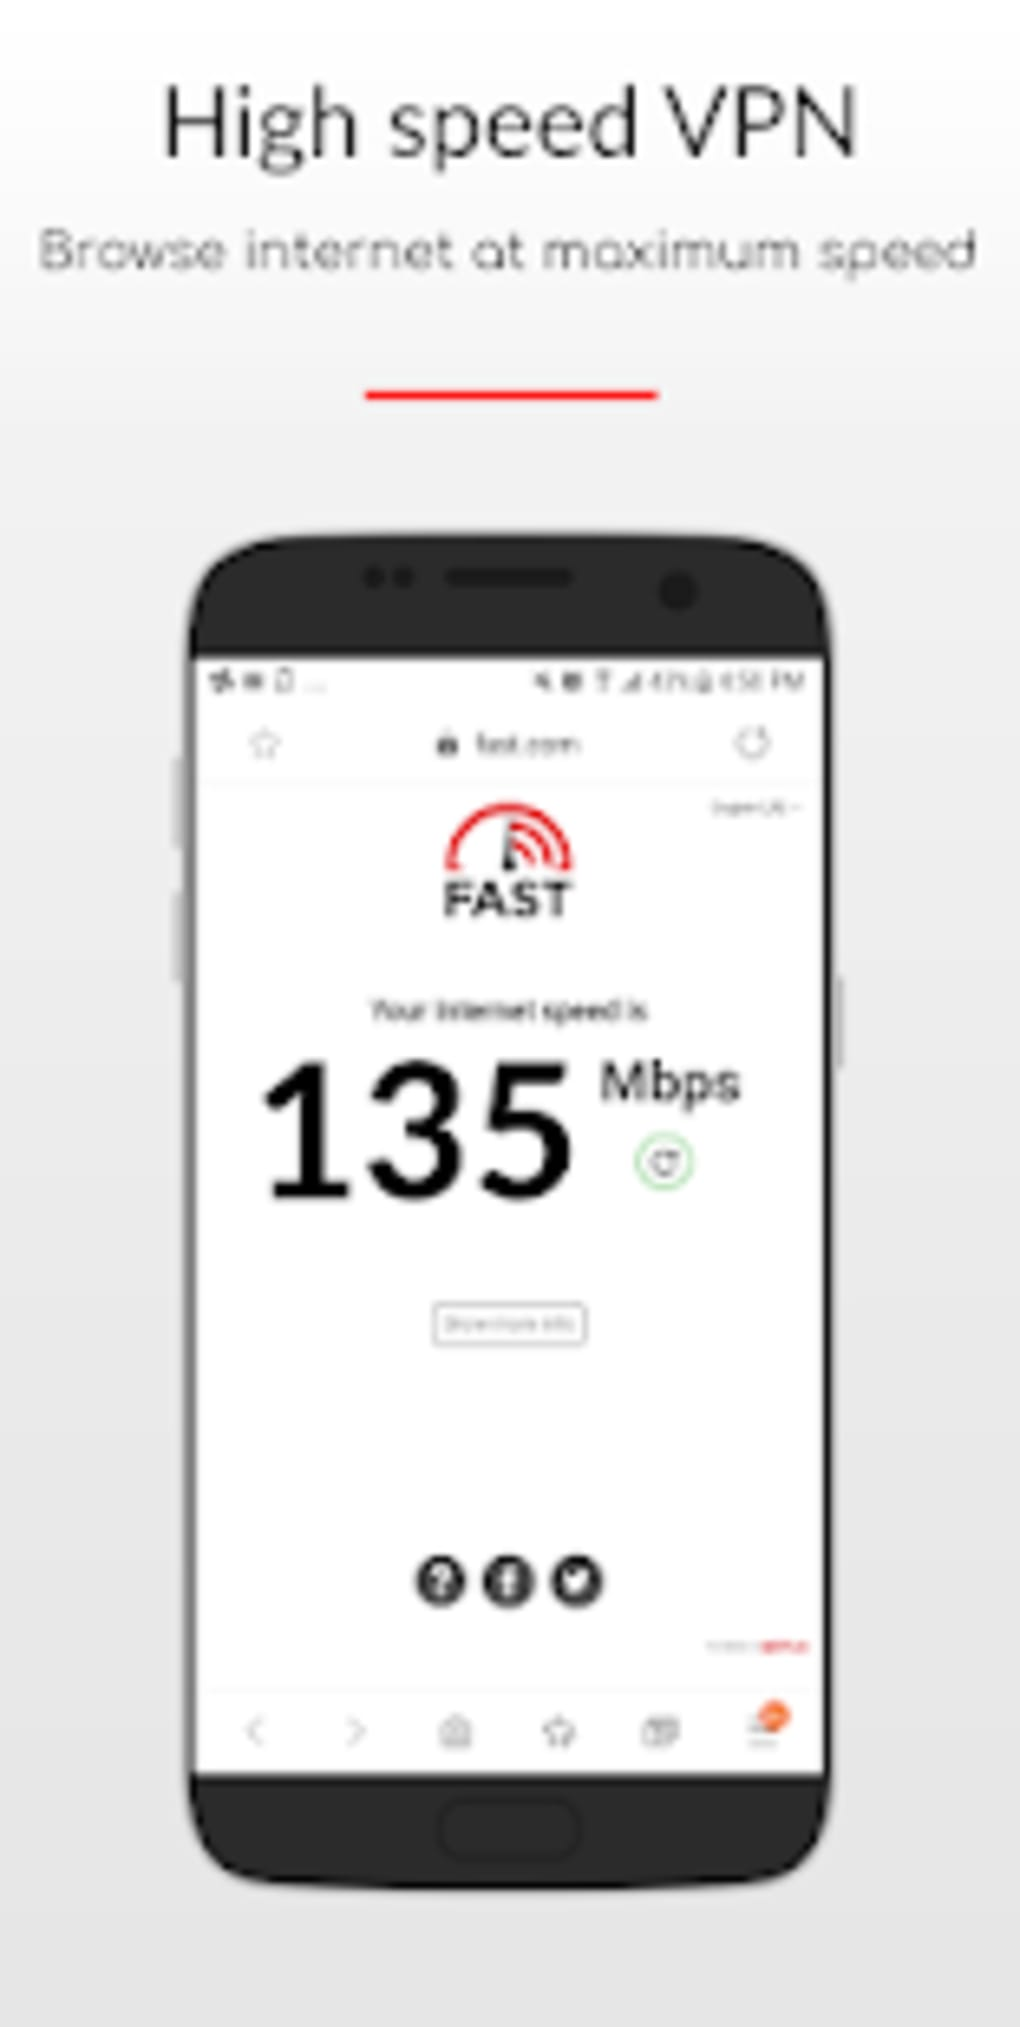 MaxVPN Pro - Fast Connect Unlimited VPN client for Android